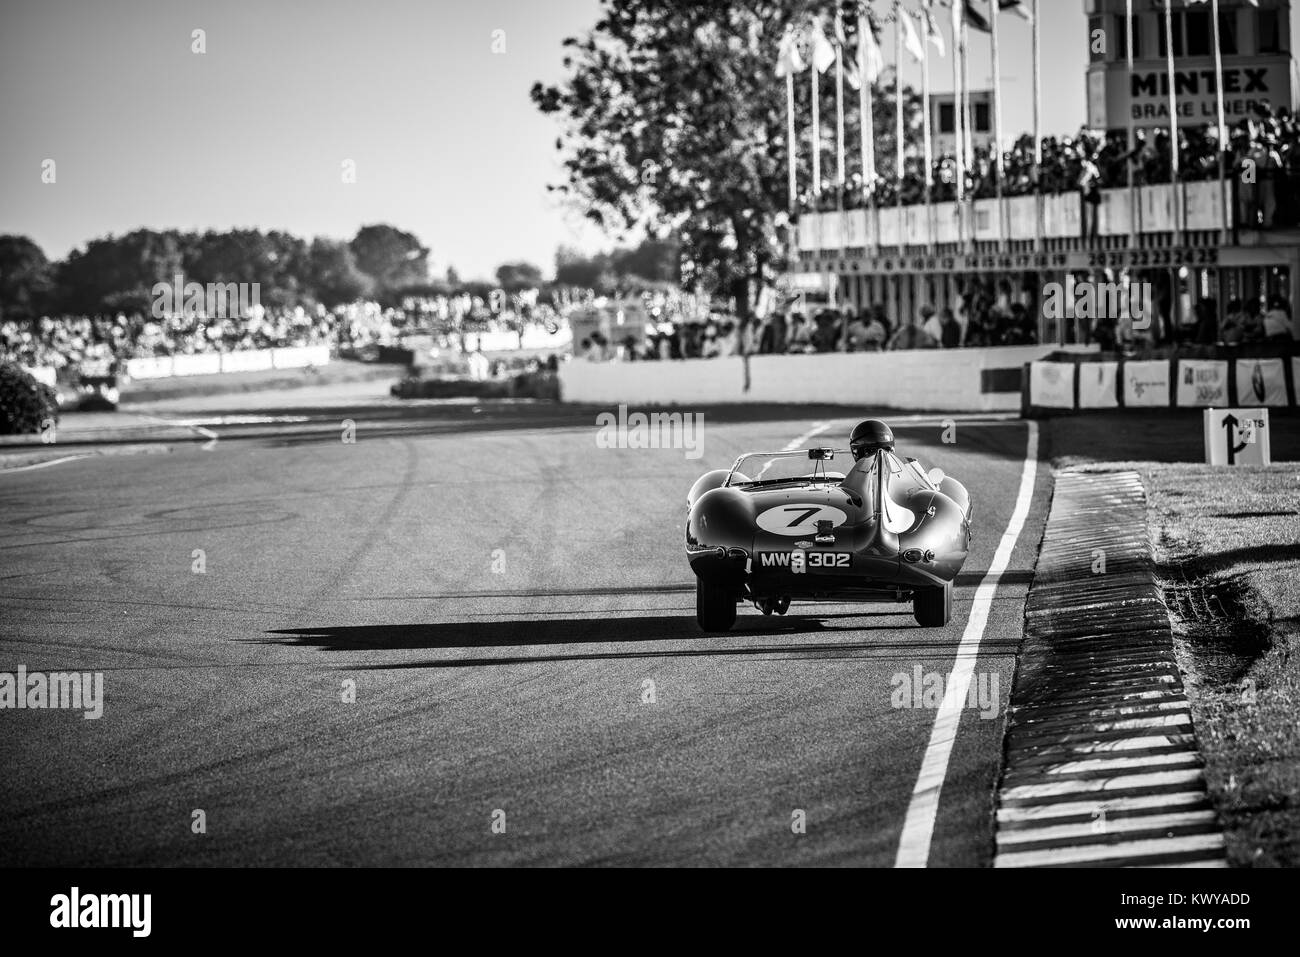 Jaguar D-Type, MWS 302, exits the chicane & heads down the Pit Straight at Goodwood Racing Circuit - Stock Image